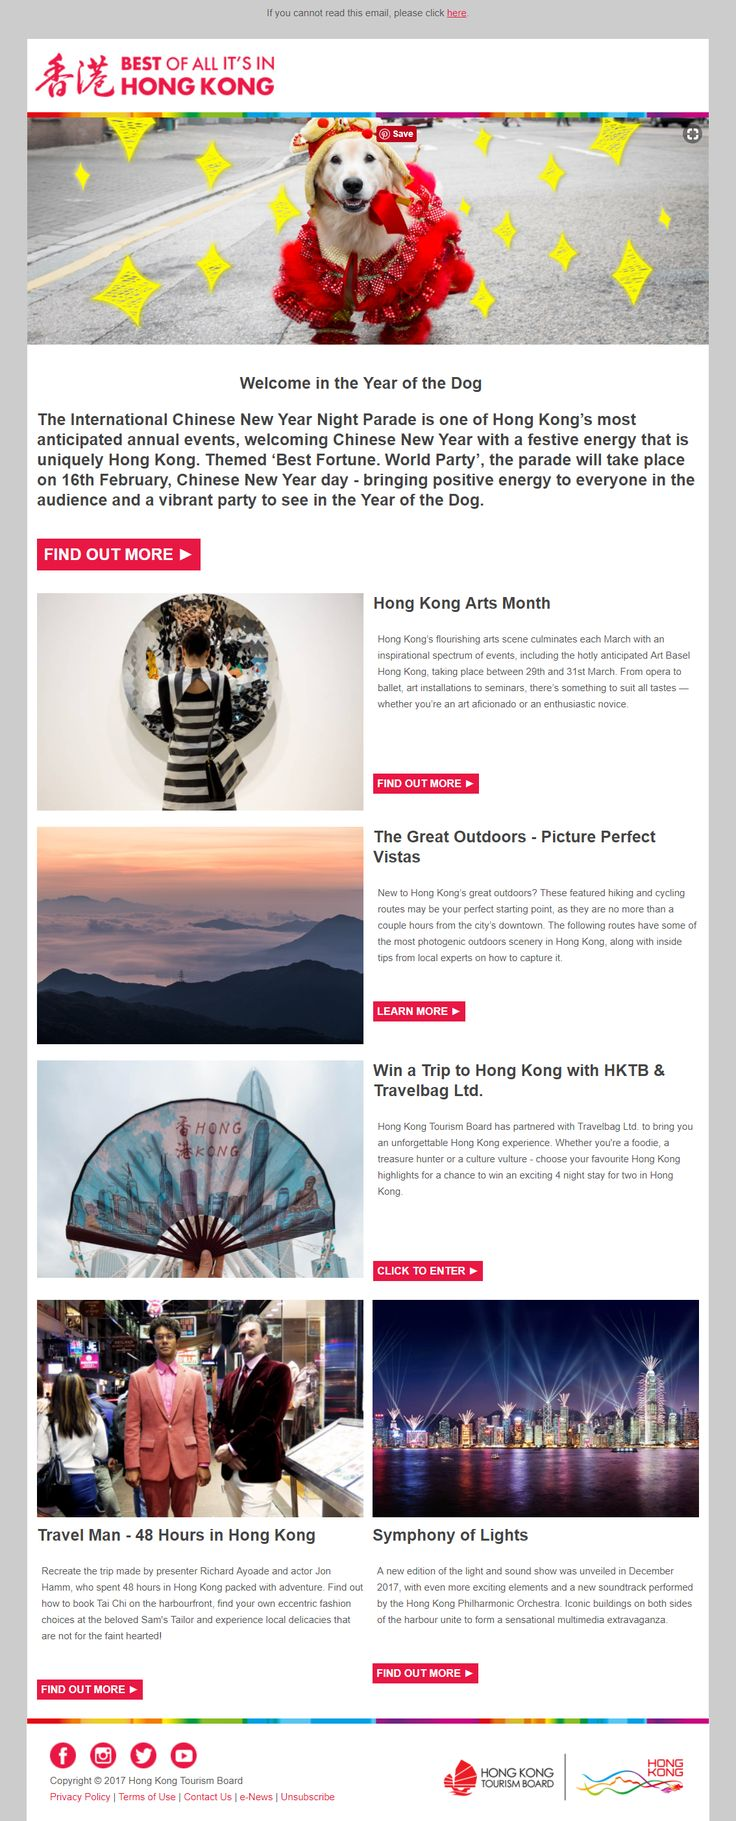 Chinese New Year Newsletter from the Hong Kong Tourism Board #EmailMarketing #Email #Marketing #ChineseNewYear #Chinese #NewYear #Lunar